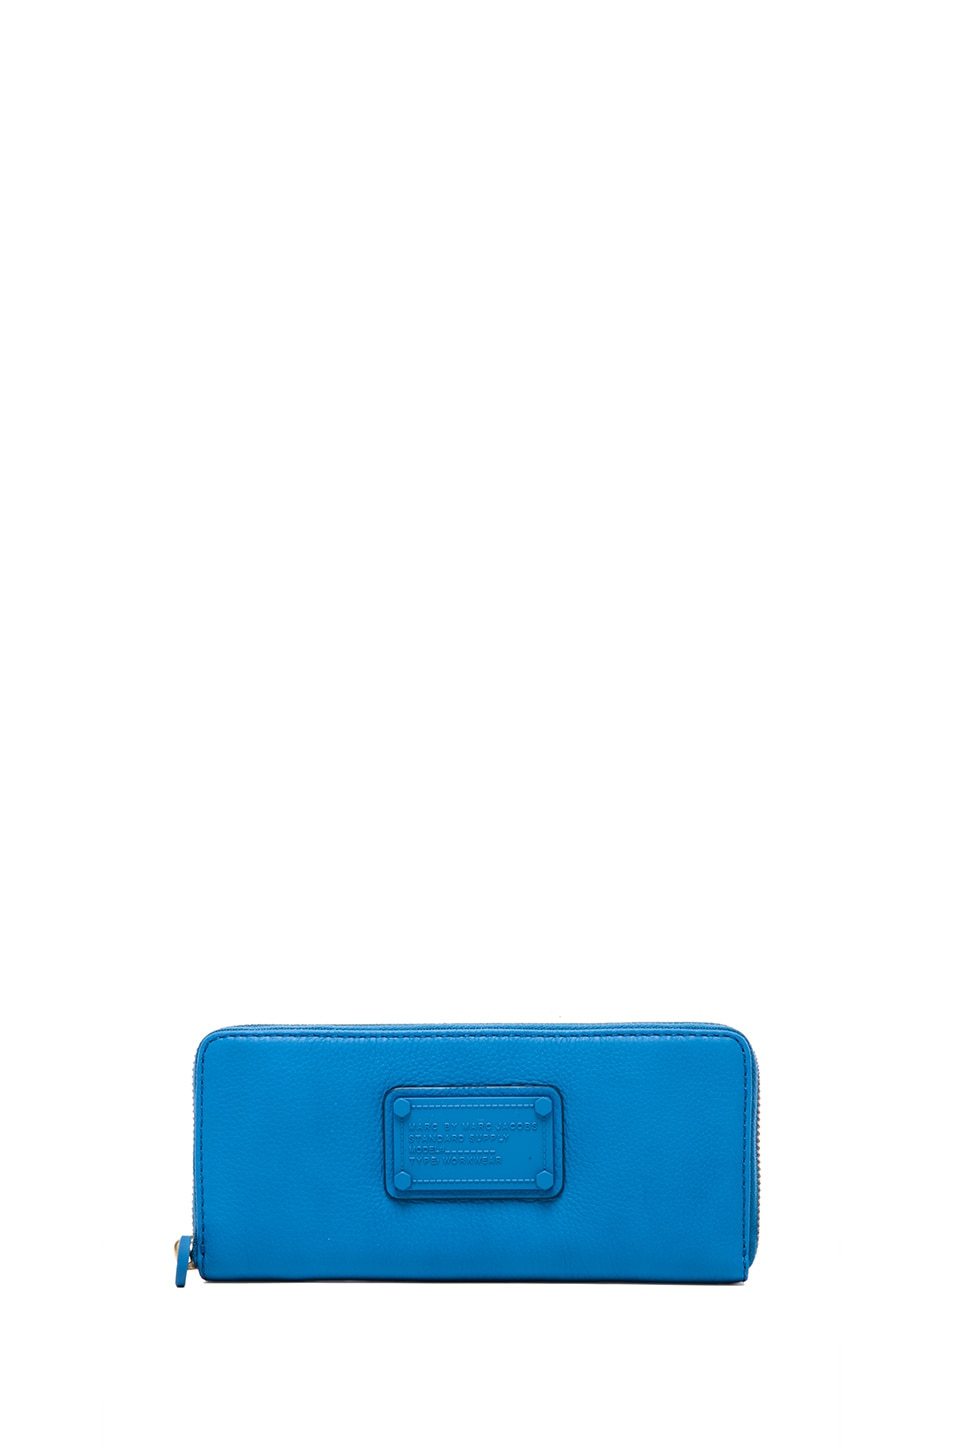 Marc by Marc Jacobs Electro Q Slim Zip Around Wallet in Electric Blue Lemonade